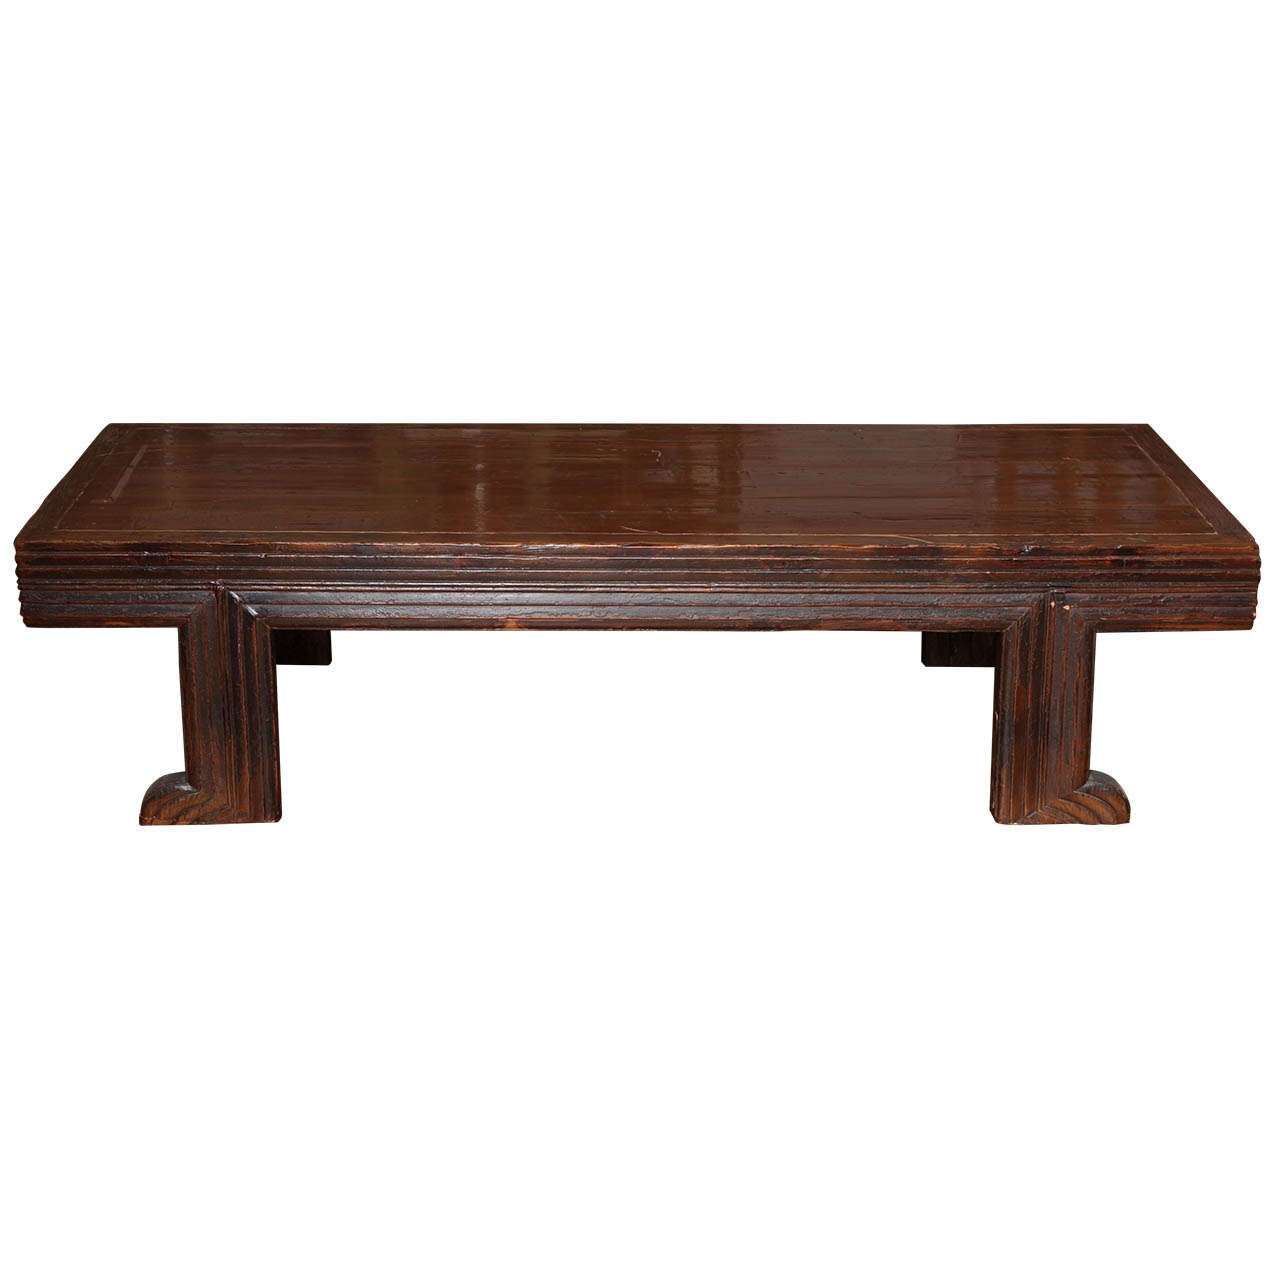 Long Coffee Table Legs: 19th Century, Long Chinese Fine Elmwood Coffee Table With